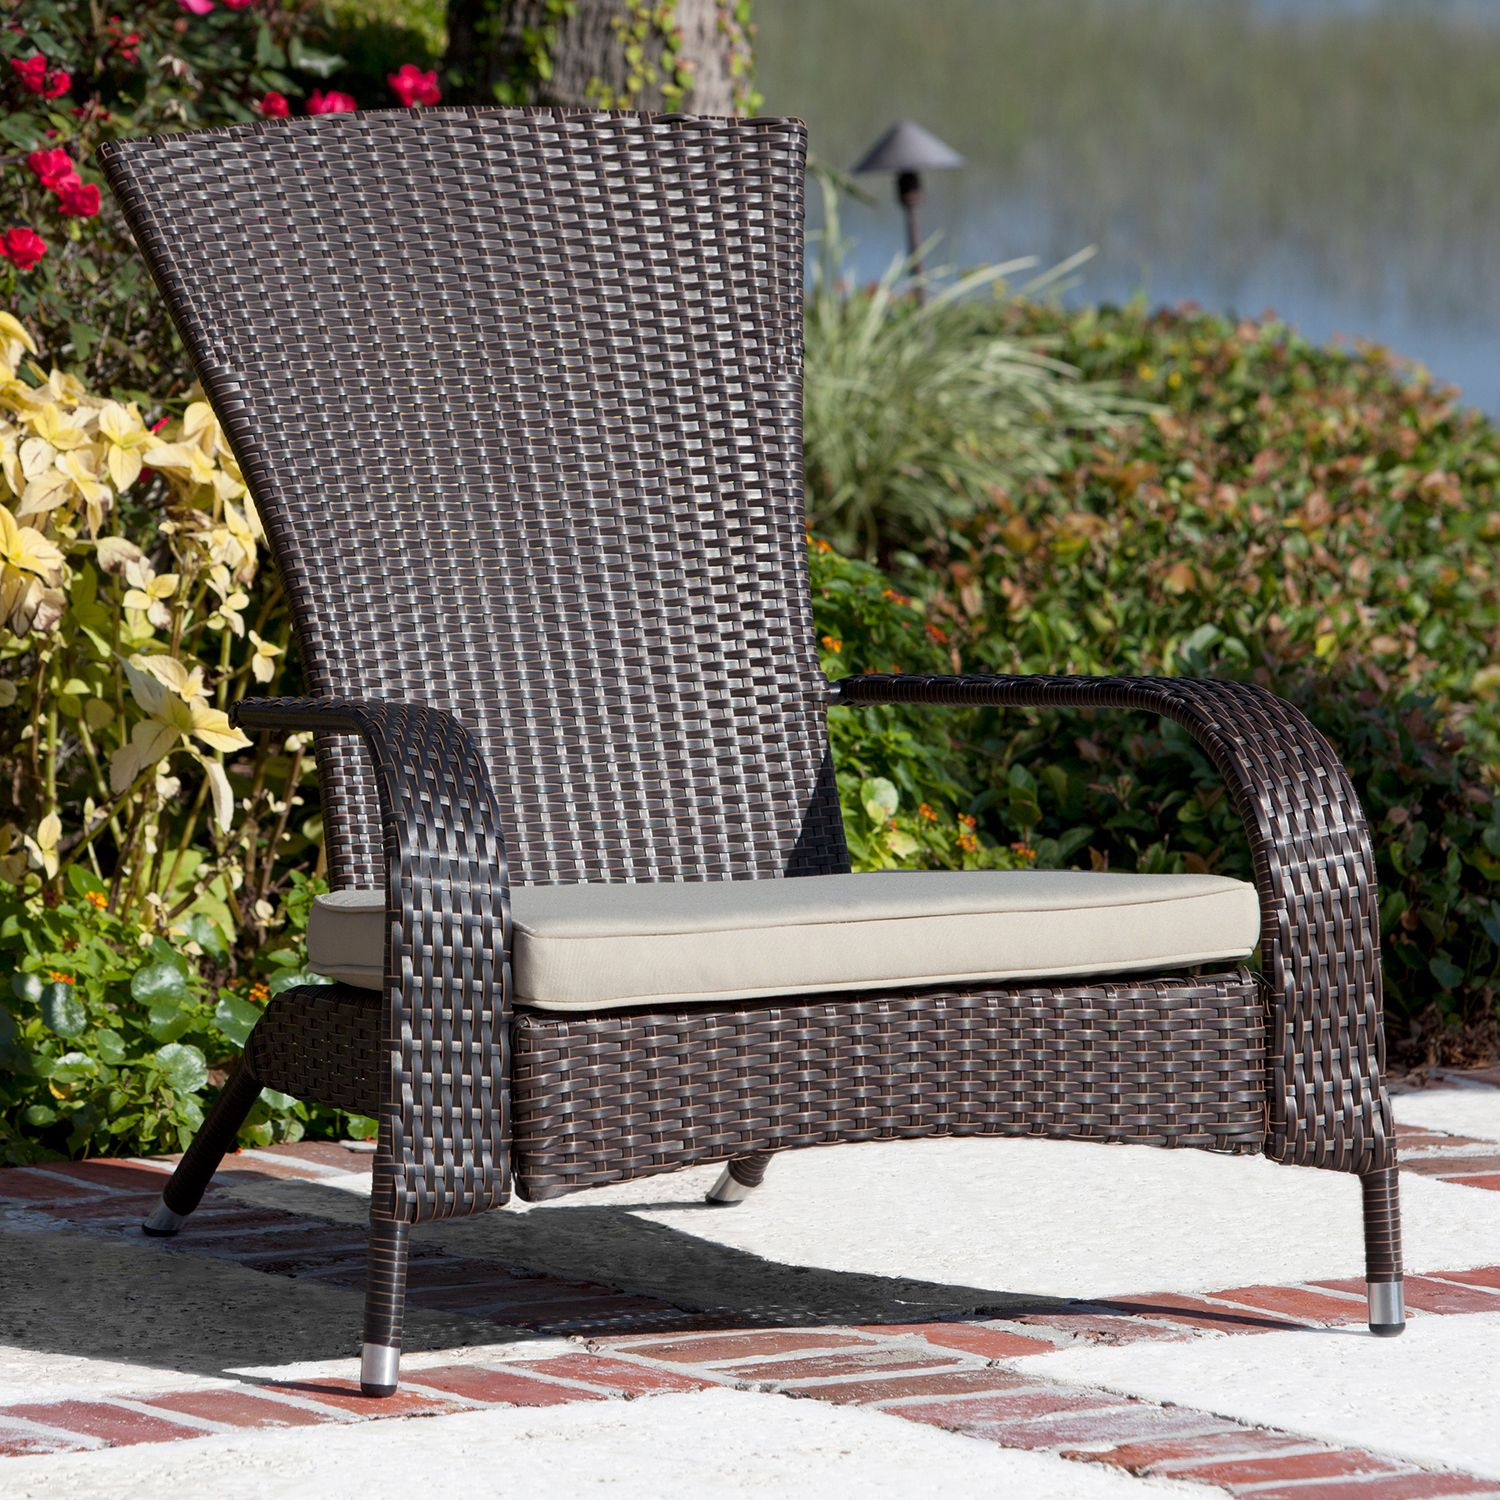 Patio Sense Coconino Outdoor Wicker Chair